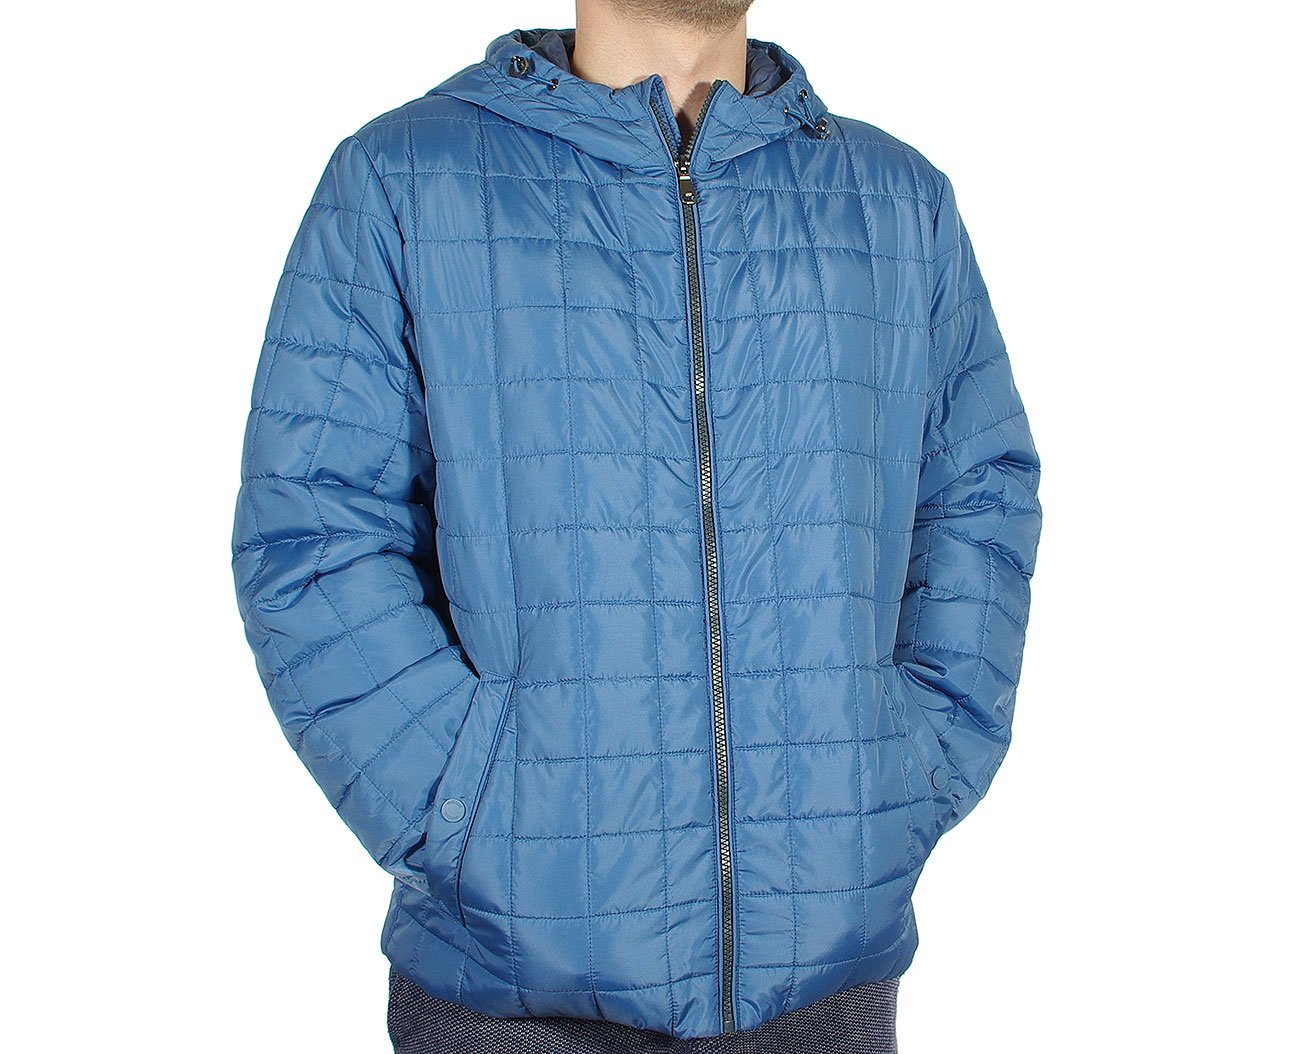 GEOX M8221J kurtka man jacket blue shadow